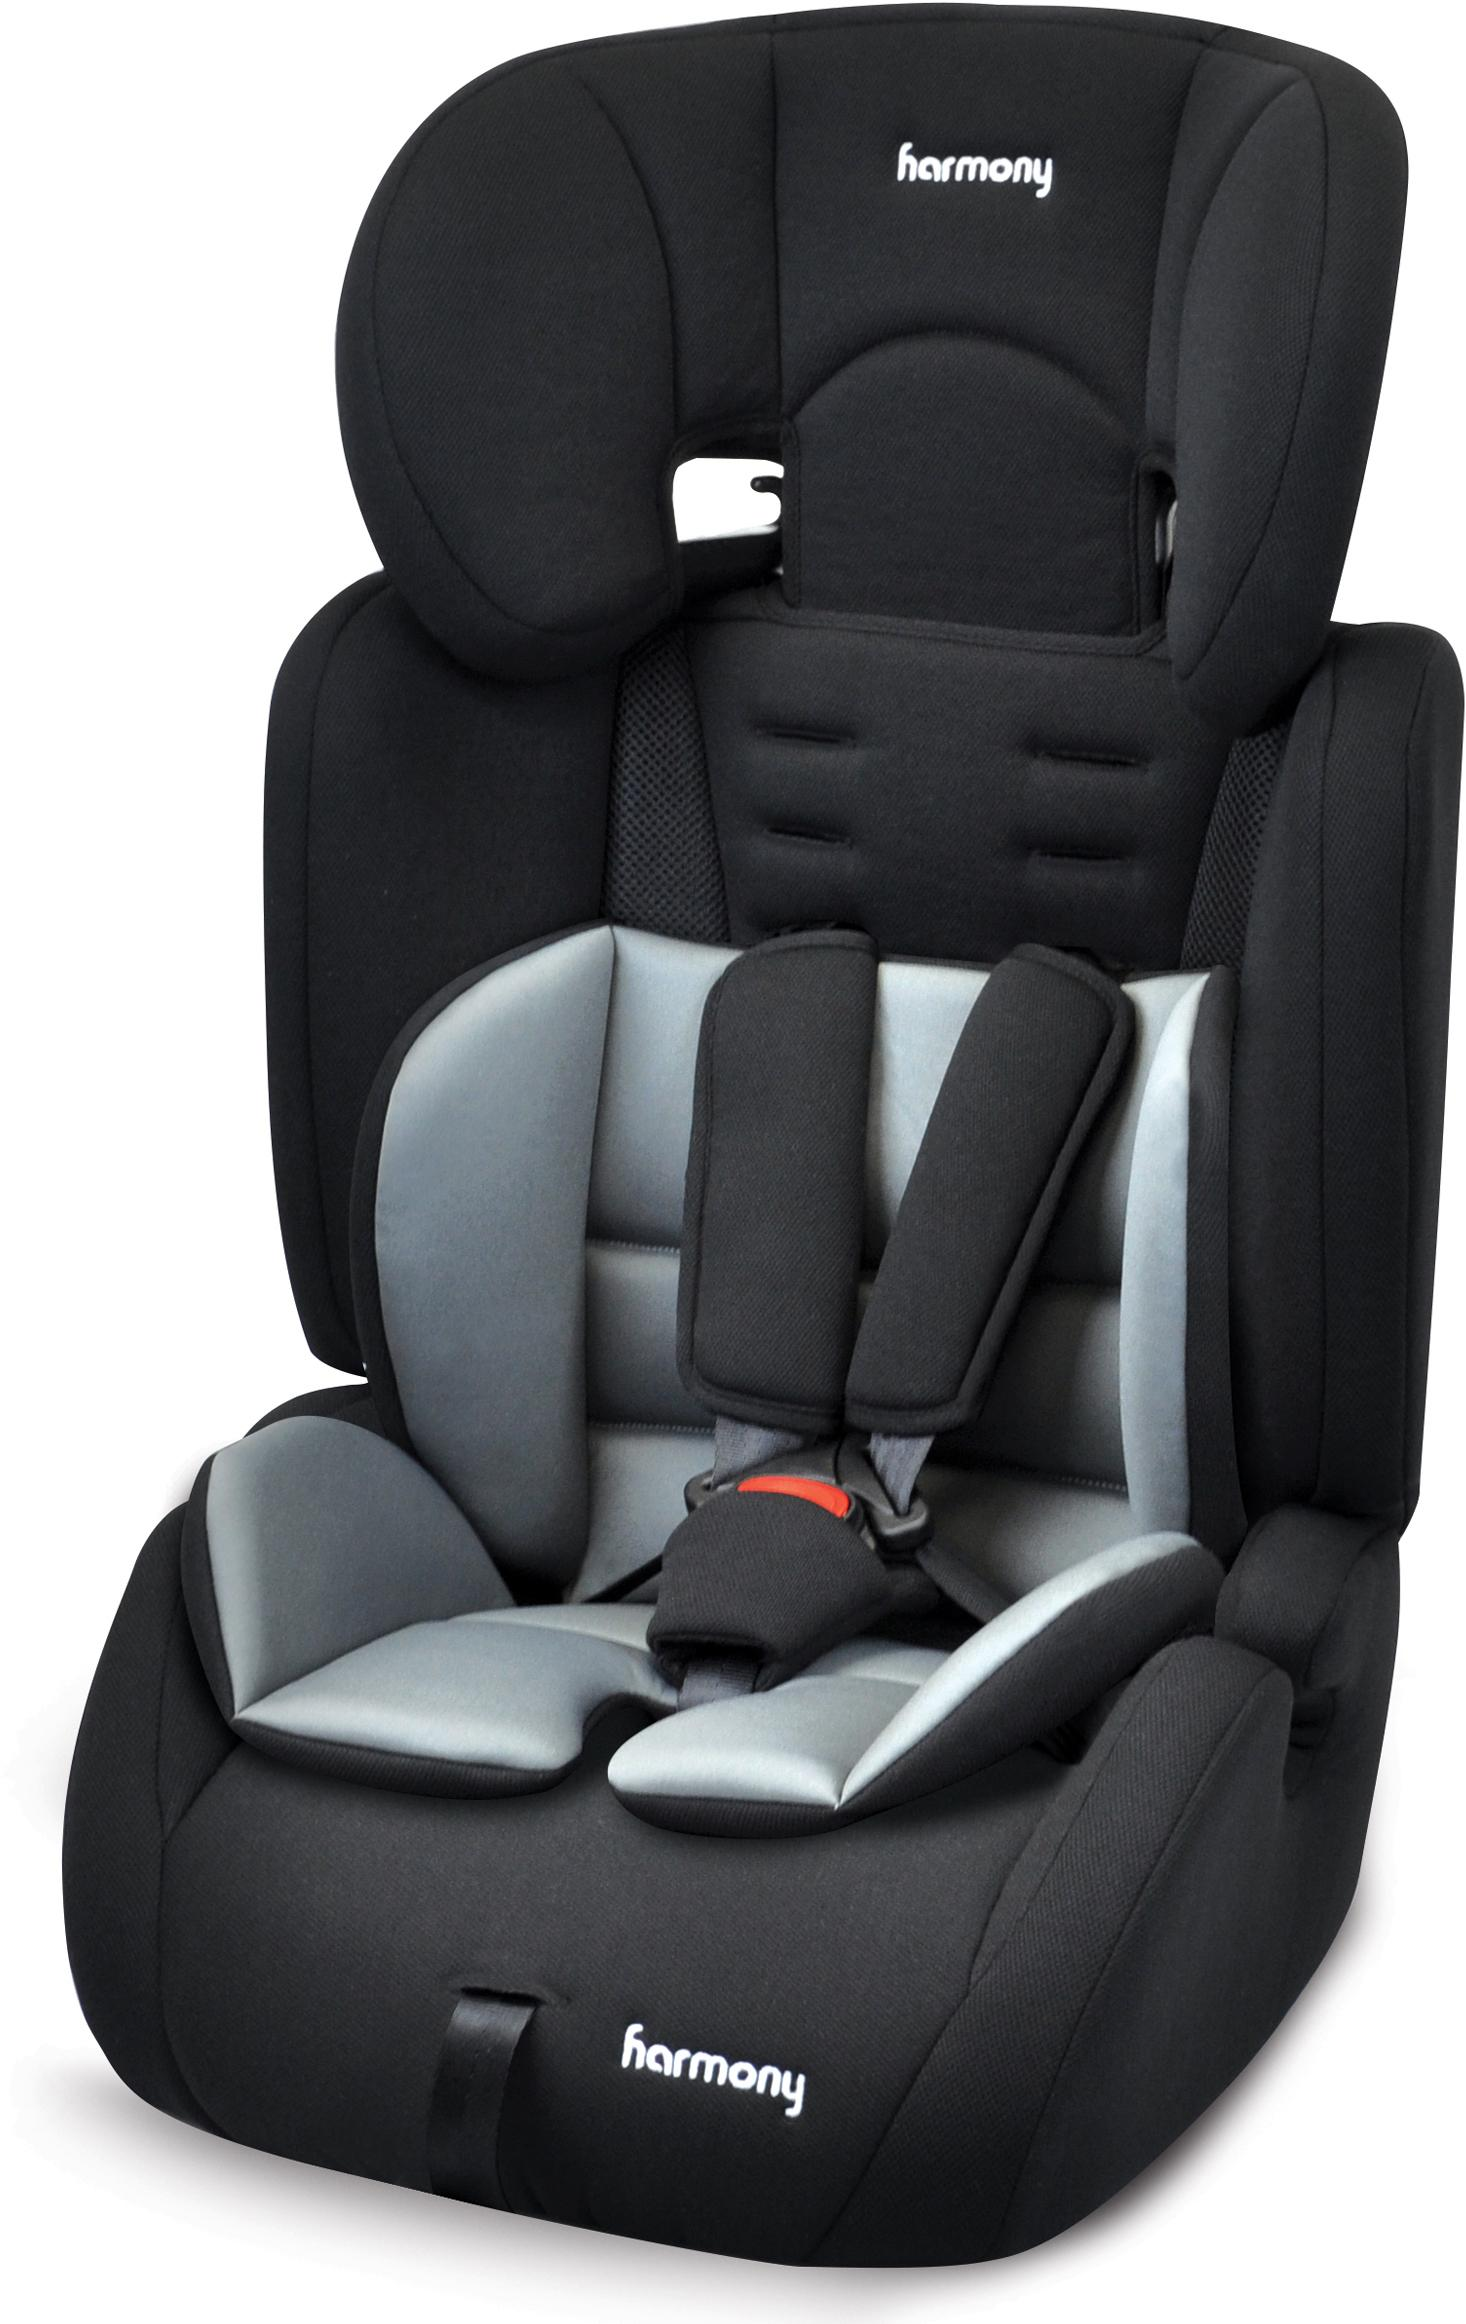 35907c325fd2 Harmony Venture Deluxe 1/2/3 Group Baby Child Car Seat 9-36kg 9mnt-12Yrs  Forward